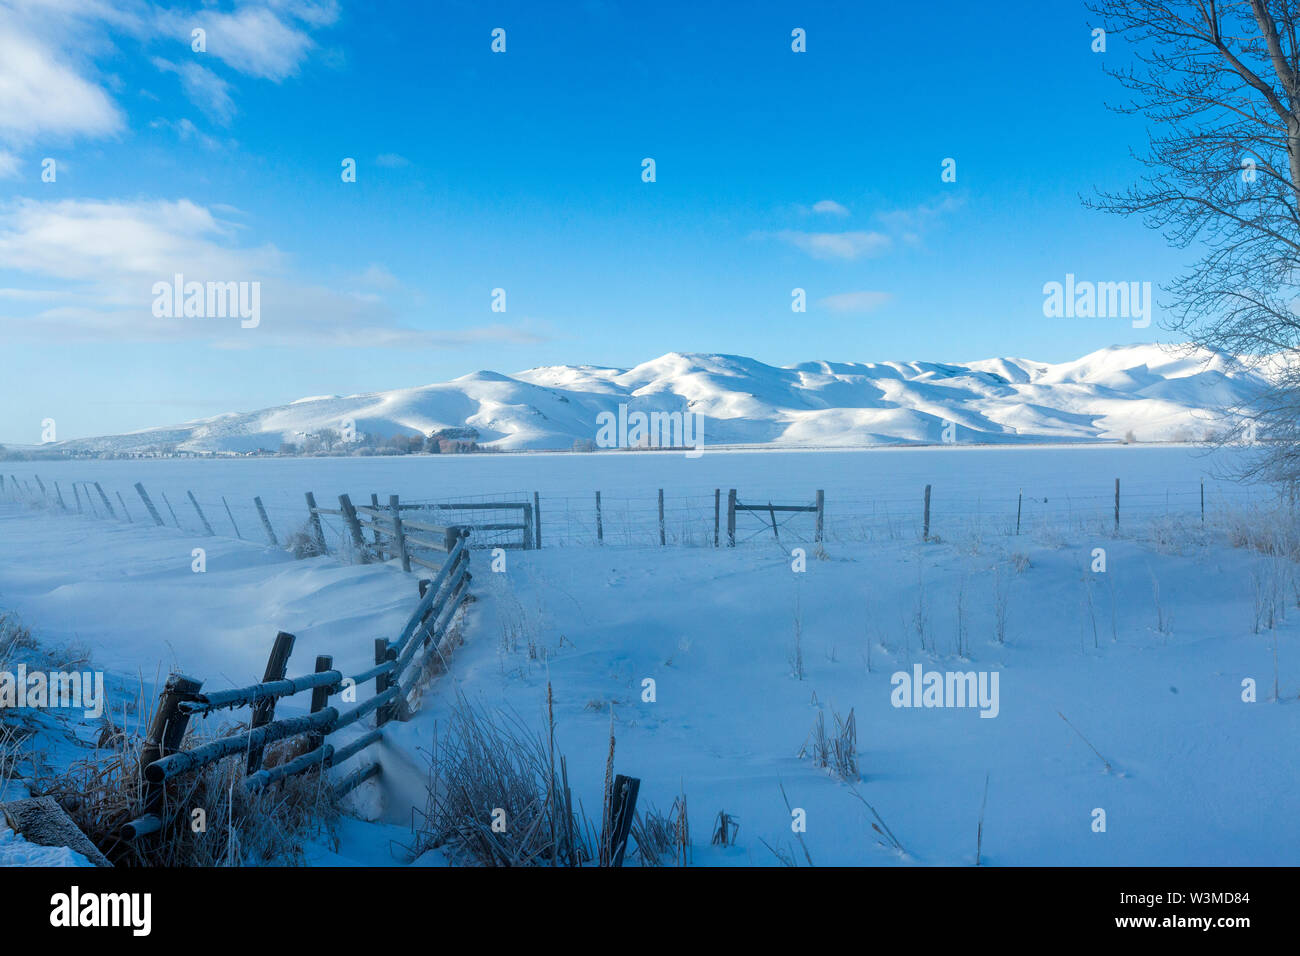 Fence and snow field during winter in Picabo, Idaho - Stock Image